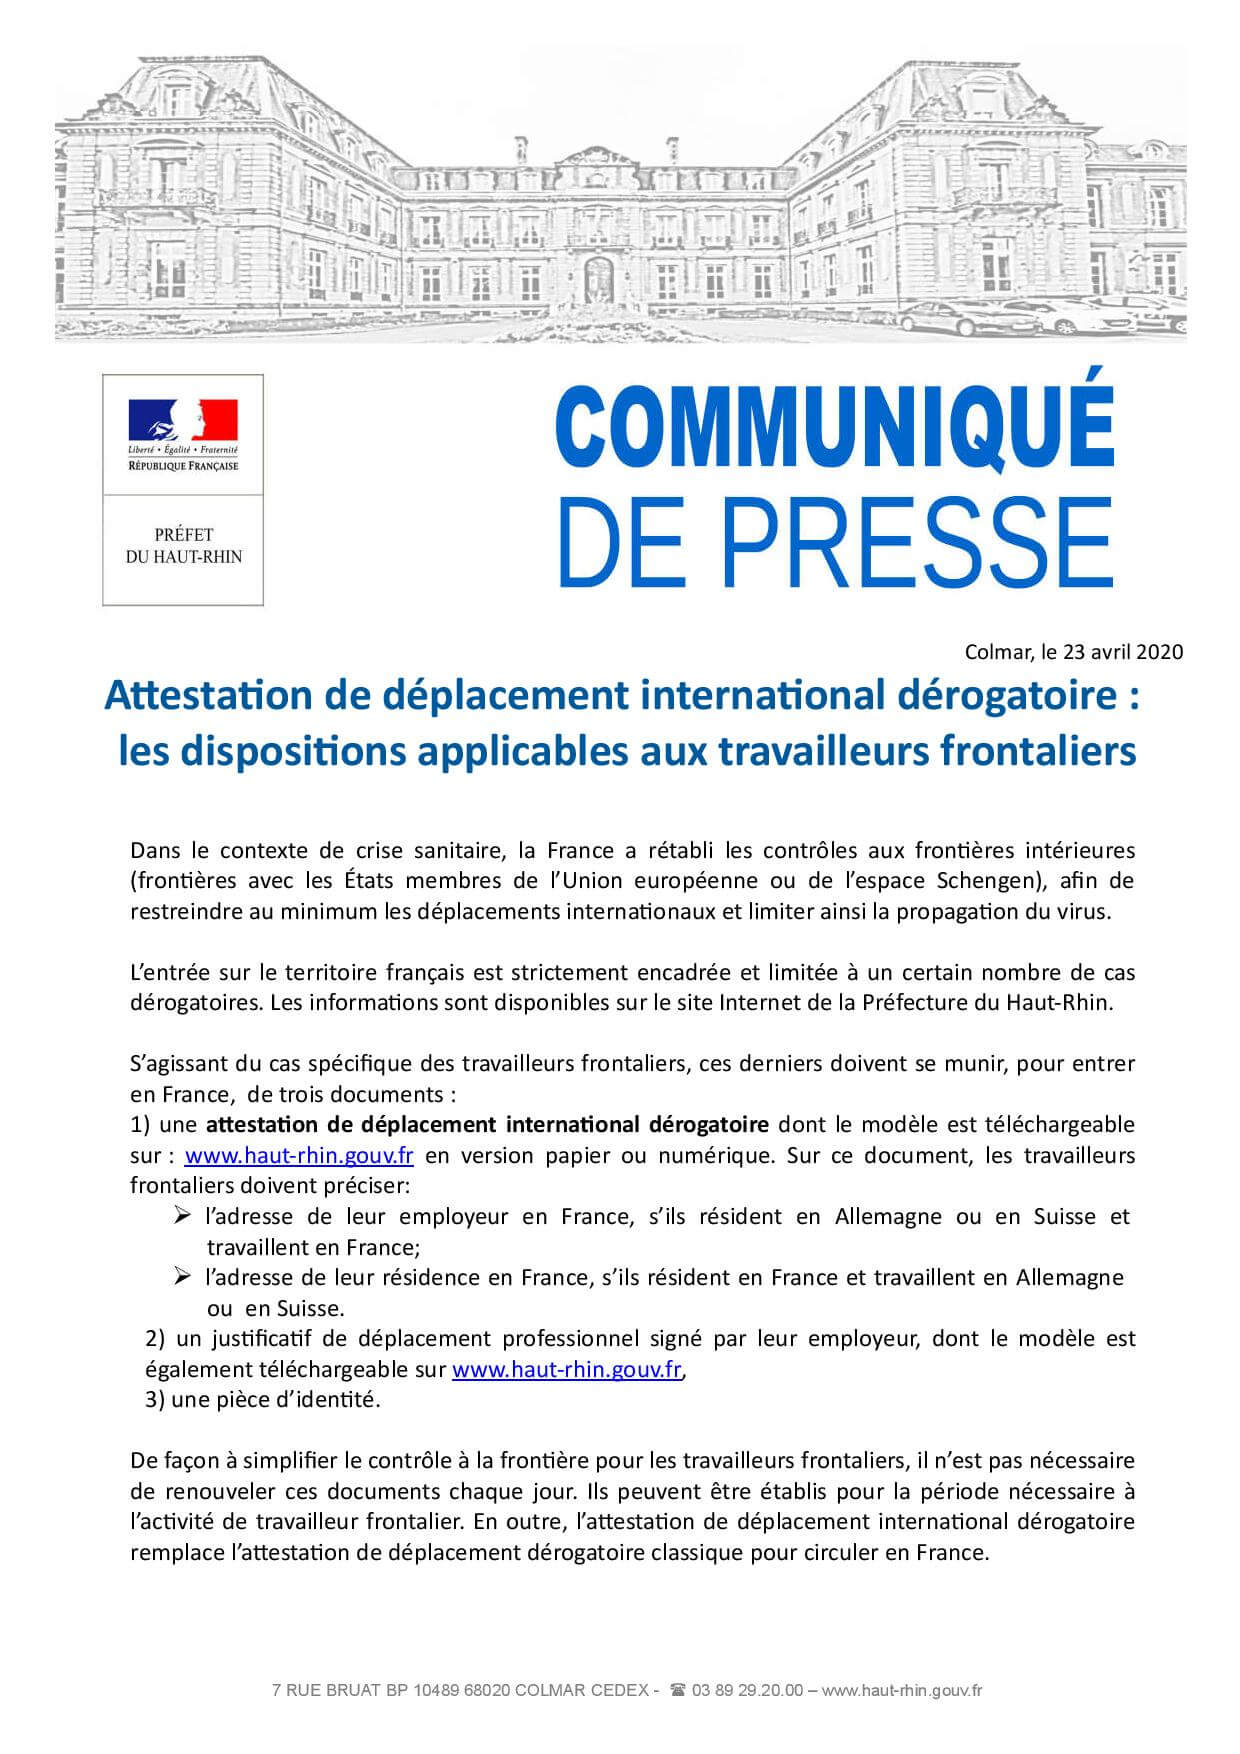 Proposition CP attestation de déplacement international dérogatoire